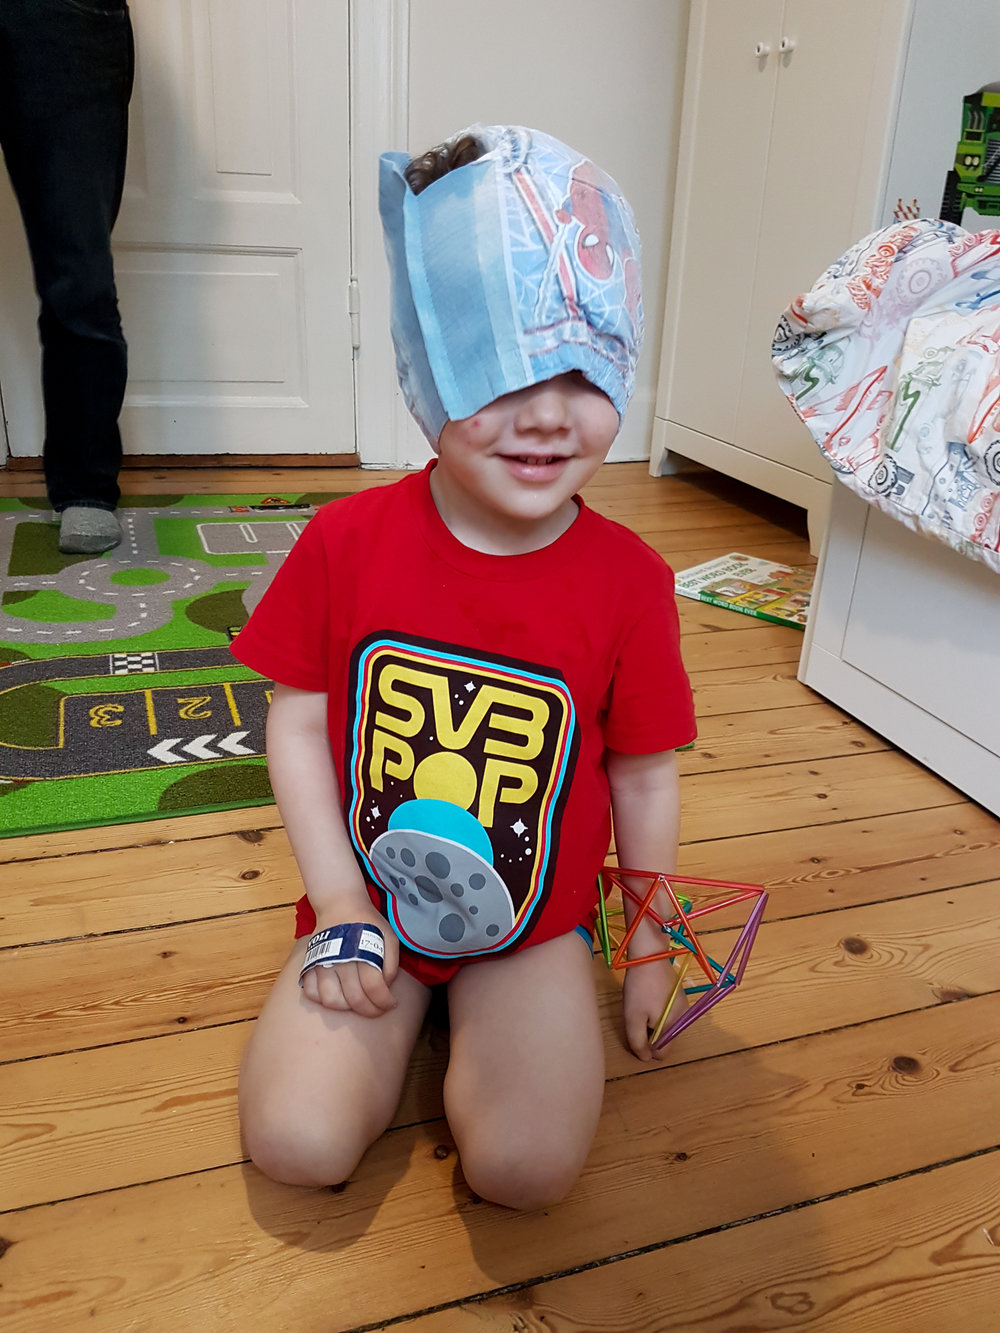 Diaper on the head is now a thing.